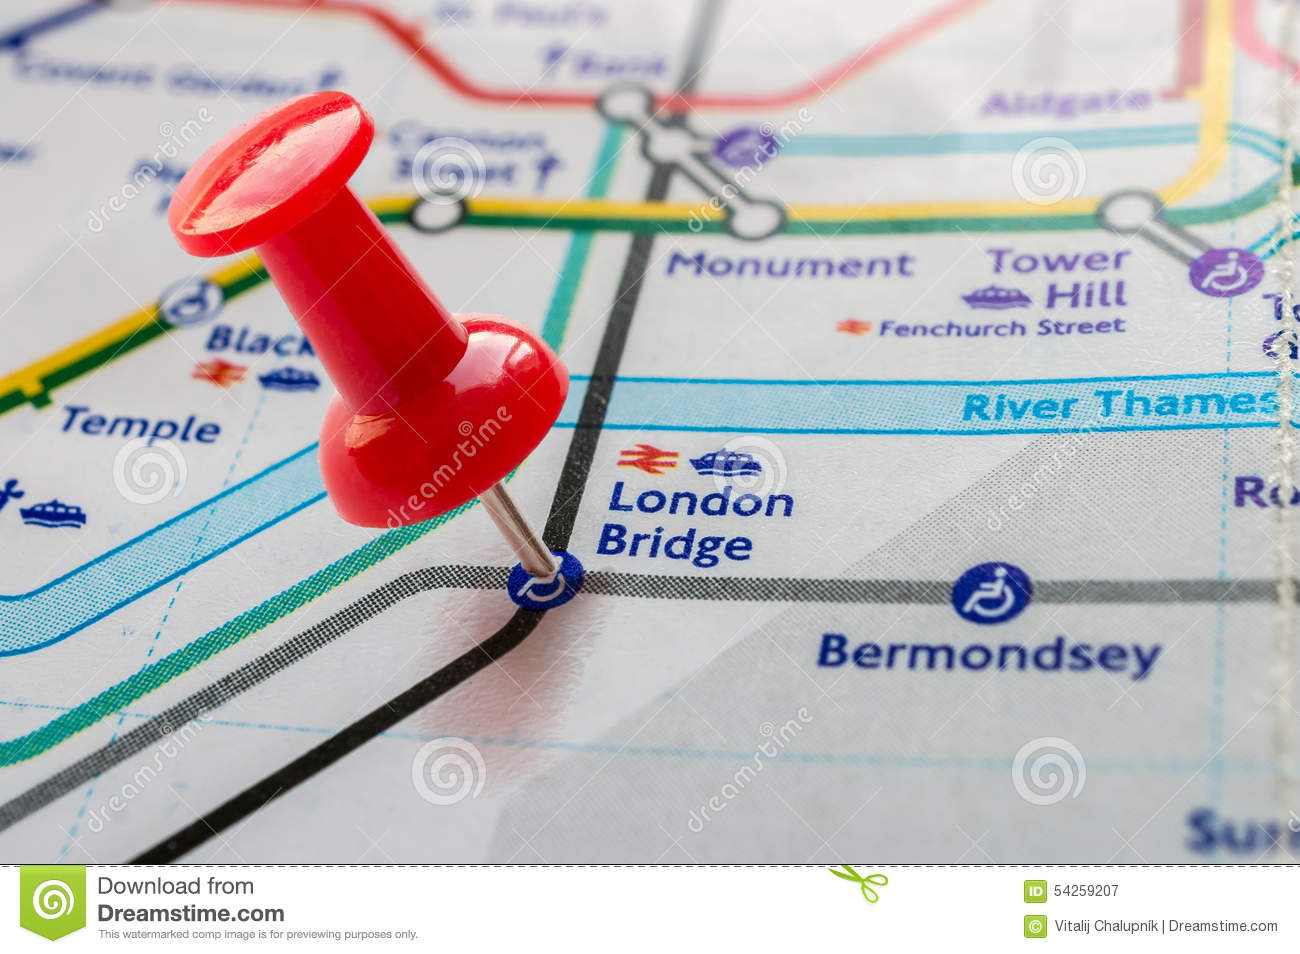 Map London Bridge.Thumbtack On London Bridge Station In London Underground Map Stock